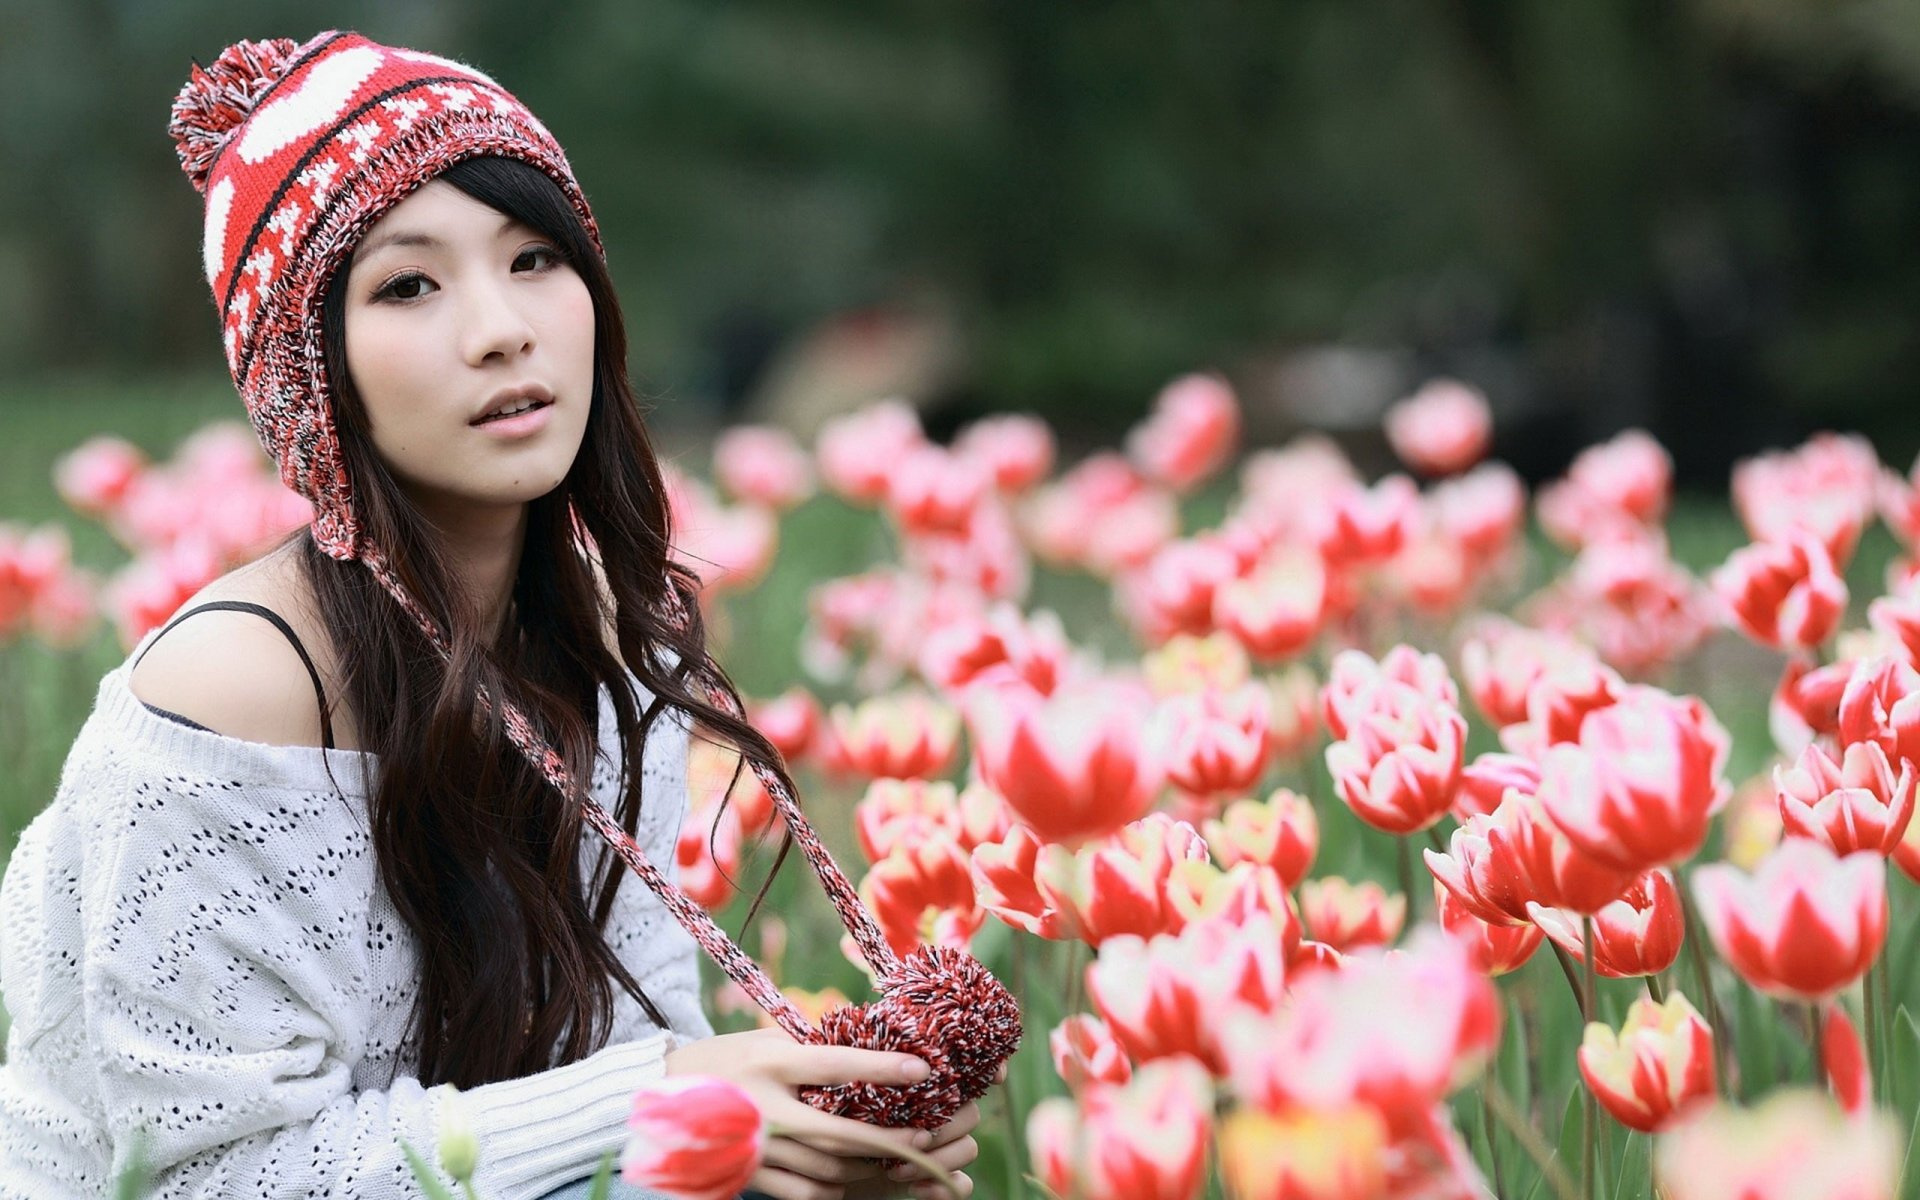 Wallpapers ID:447145